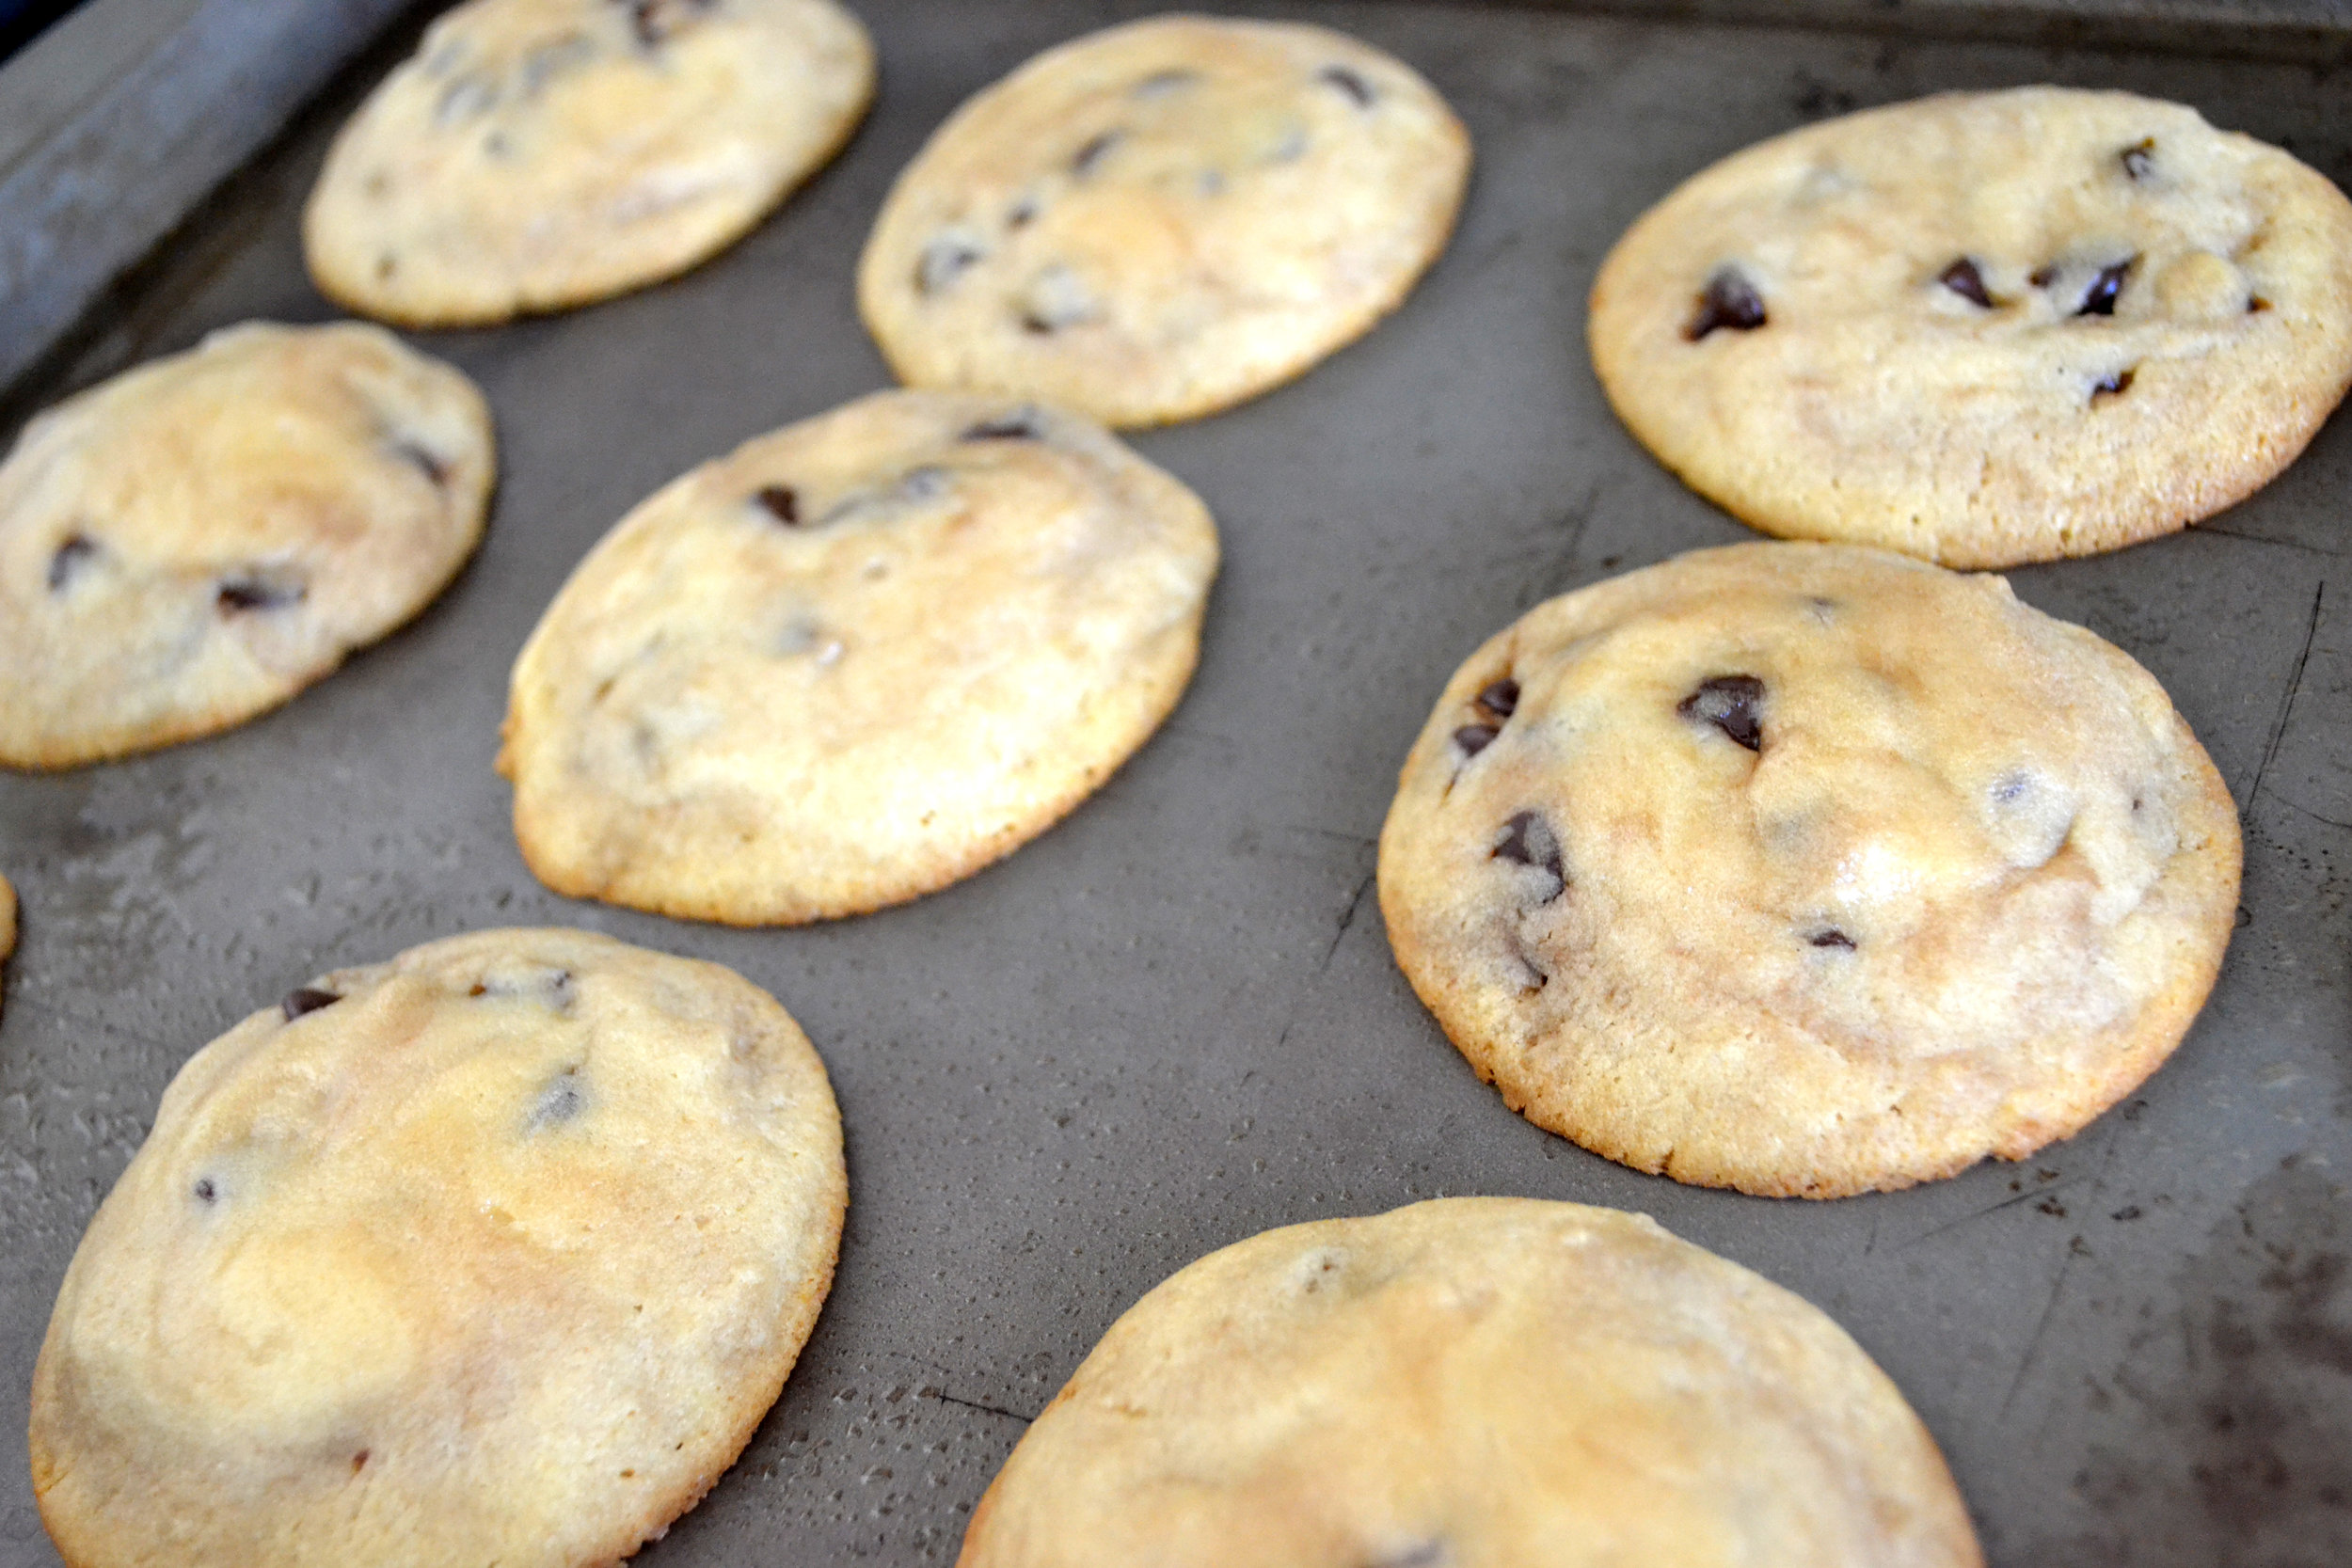 Warm and crispy cookies out of the oven.